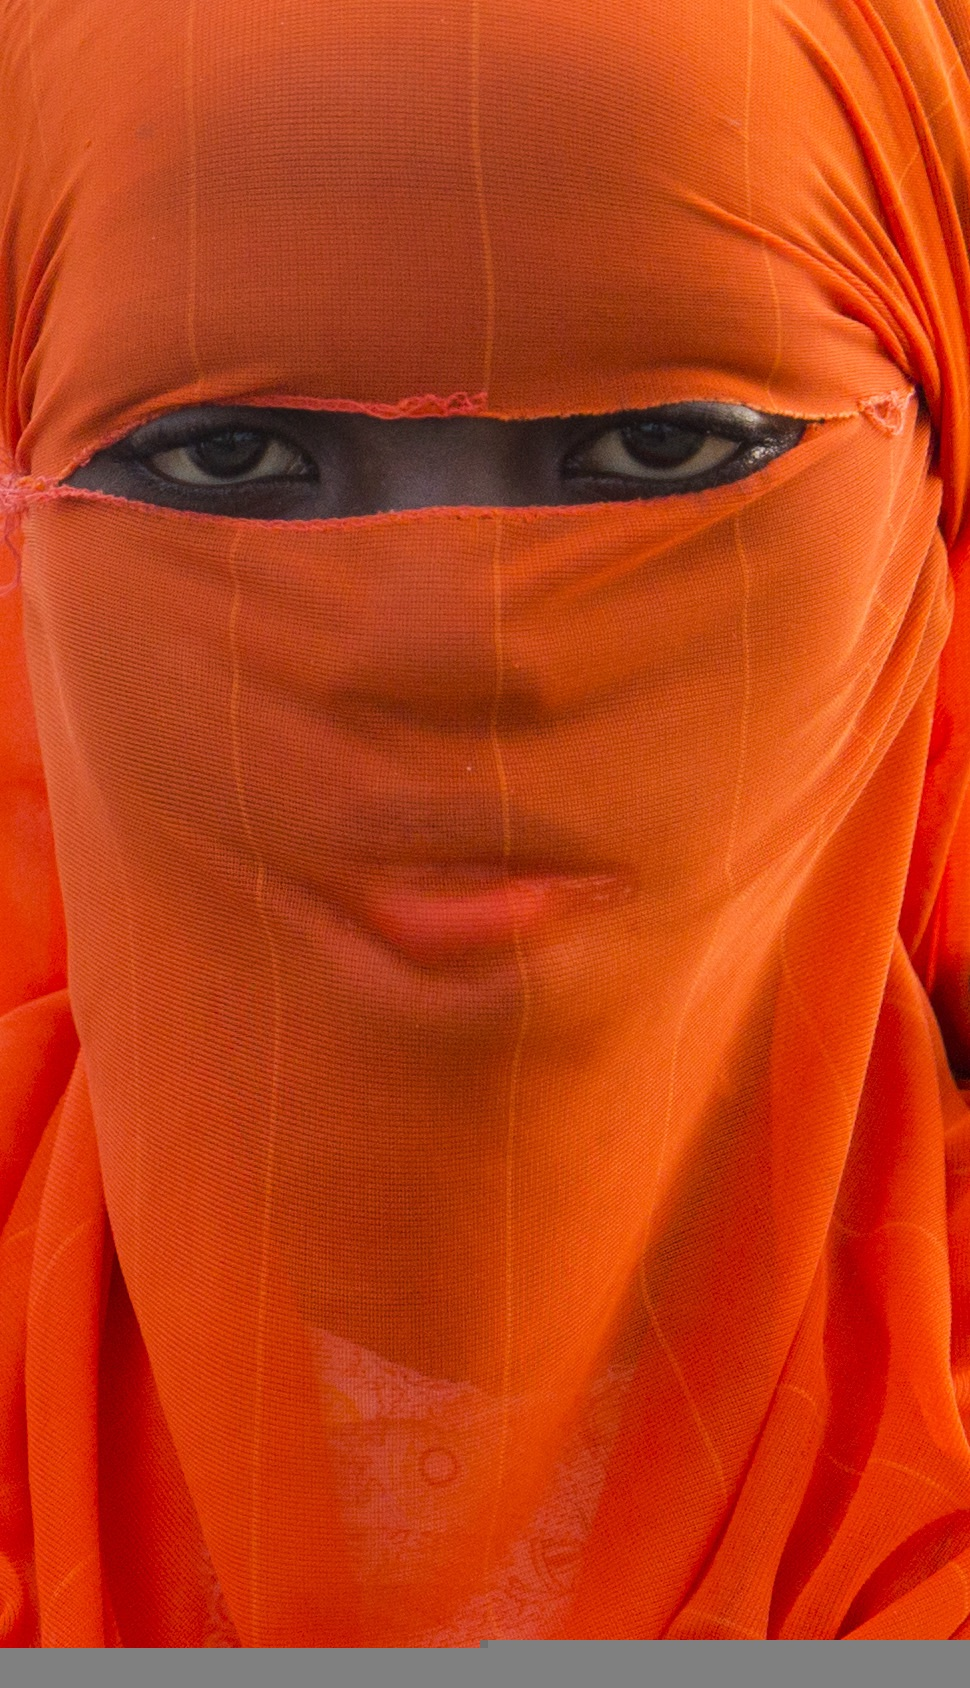 A young girl covers her face, traditional of the Muslim culture of Zanzibar, Africa.Photo by Kelly Wenzel